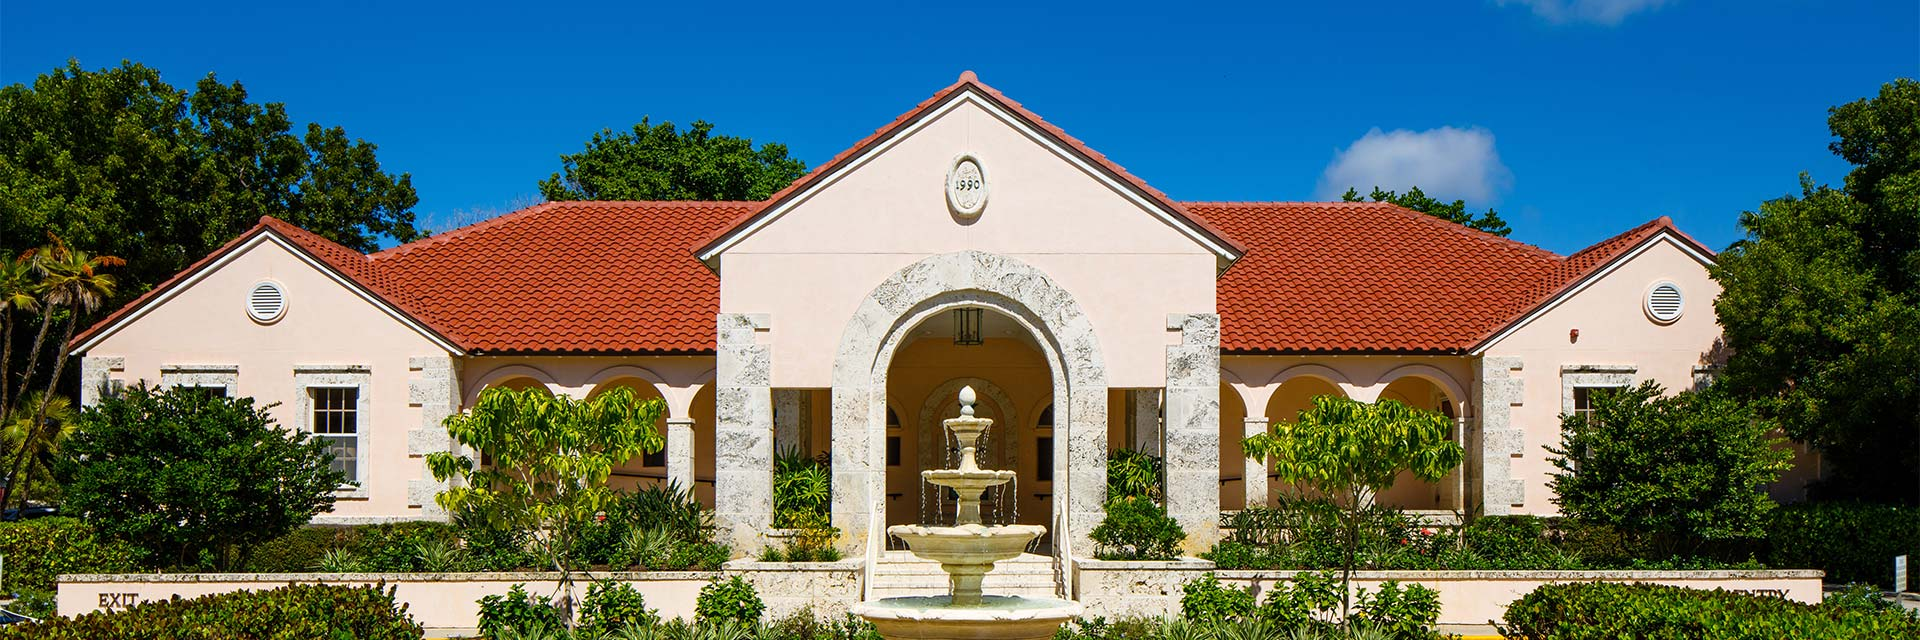 Boca Grande Health Clinic Building front with fountain